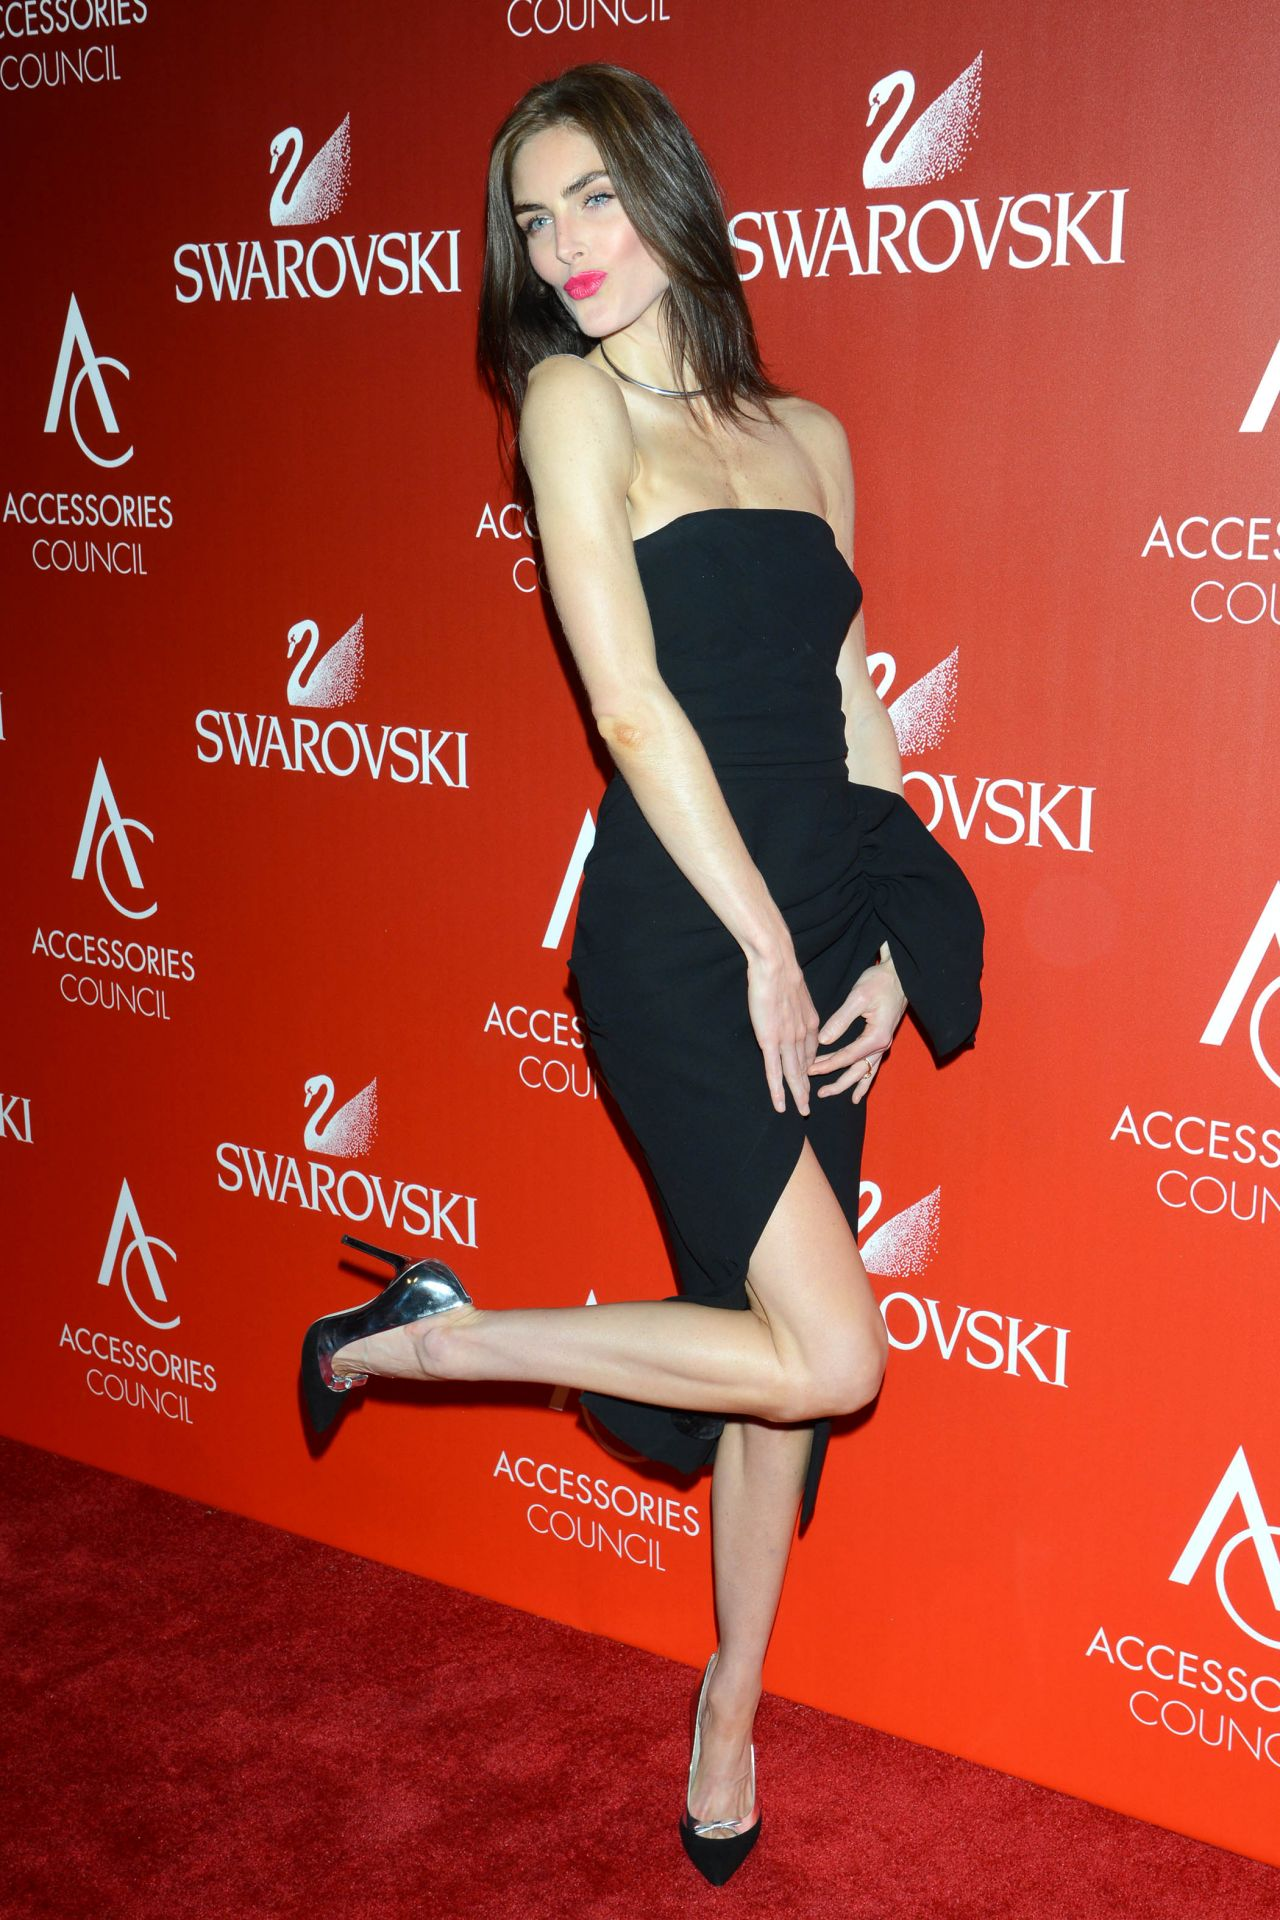 Hilary Rhoda Accessories Council 2015 Ace Awards In New York City